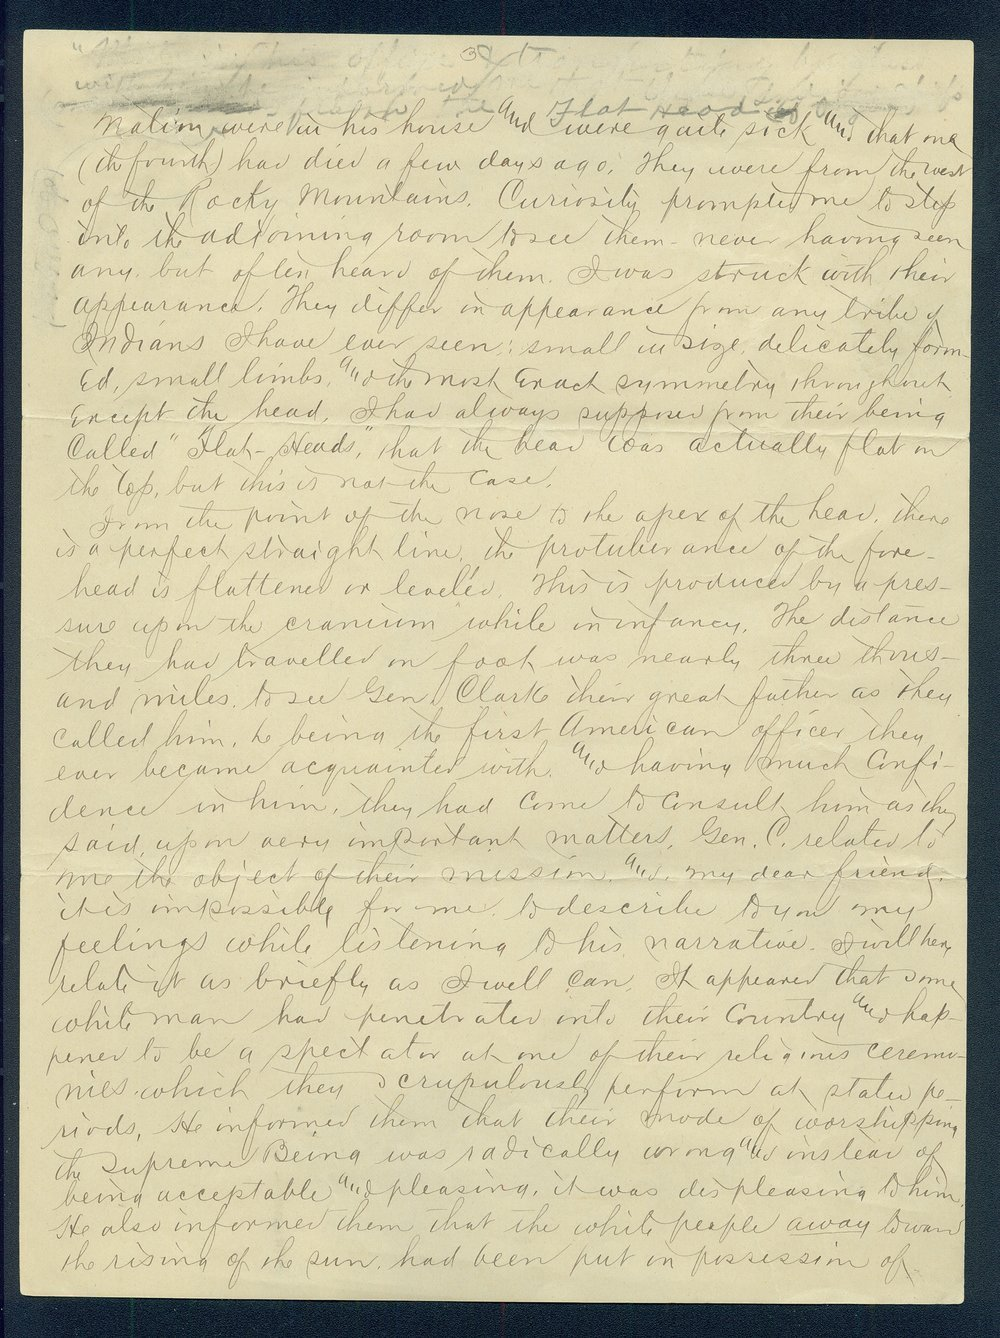 William Walker to G.P. Disosway - 3